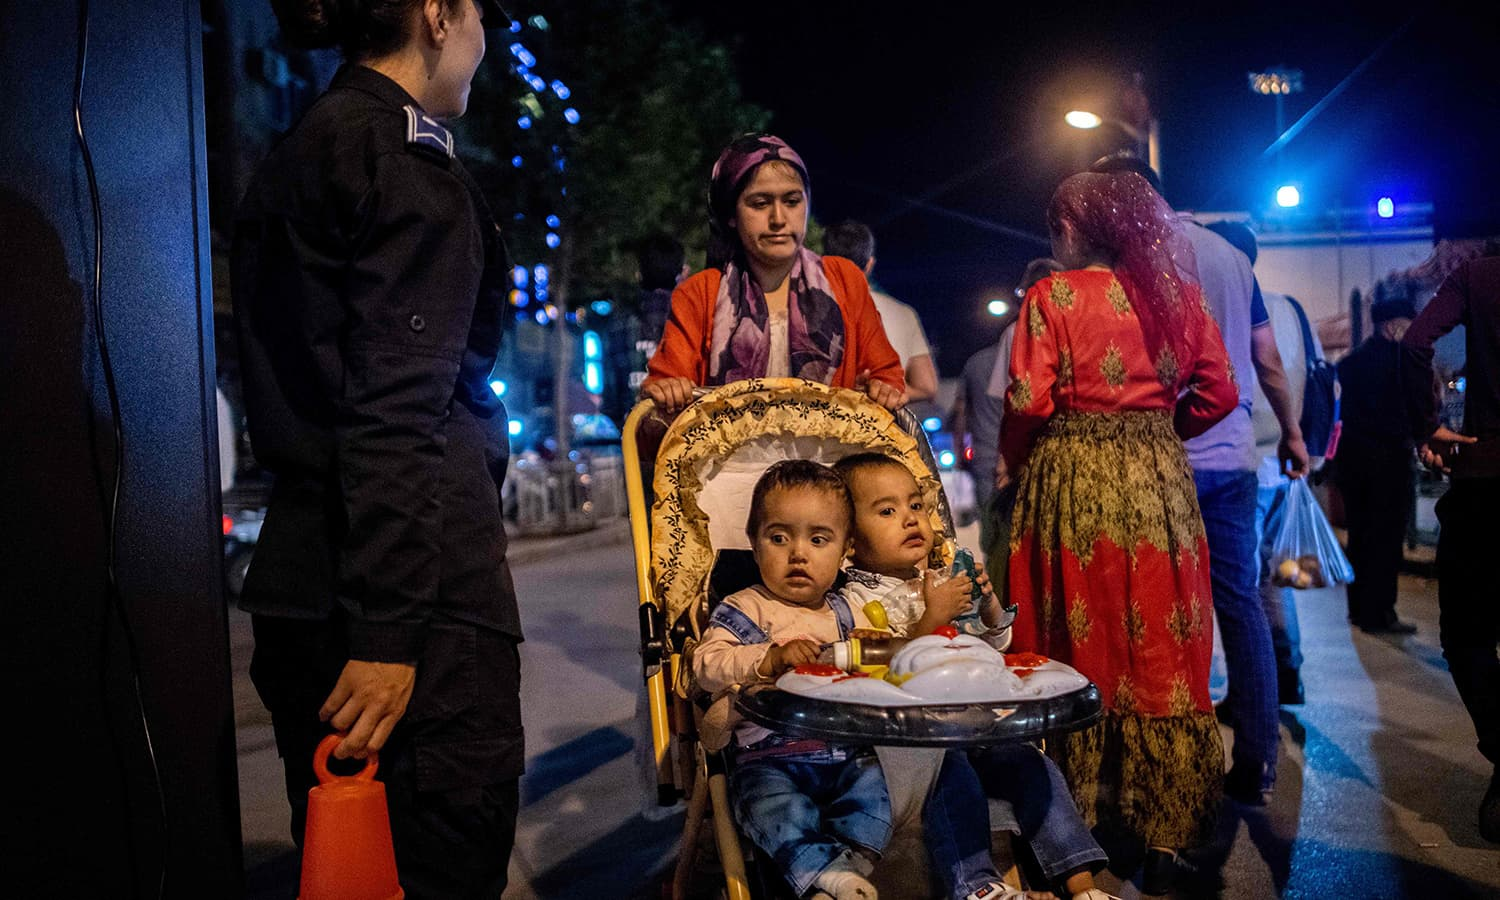 A woman pushes her children in a stroller through a police checkpoint at a night food market near the Id Kah Mosque in Kashgar in China's Xinjiang in this file photo. — AFP